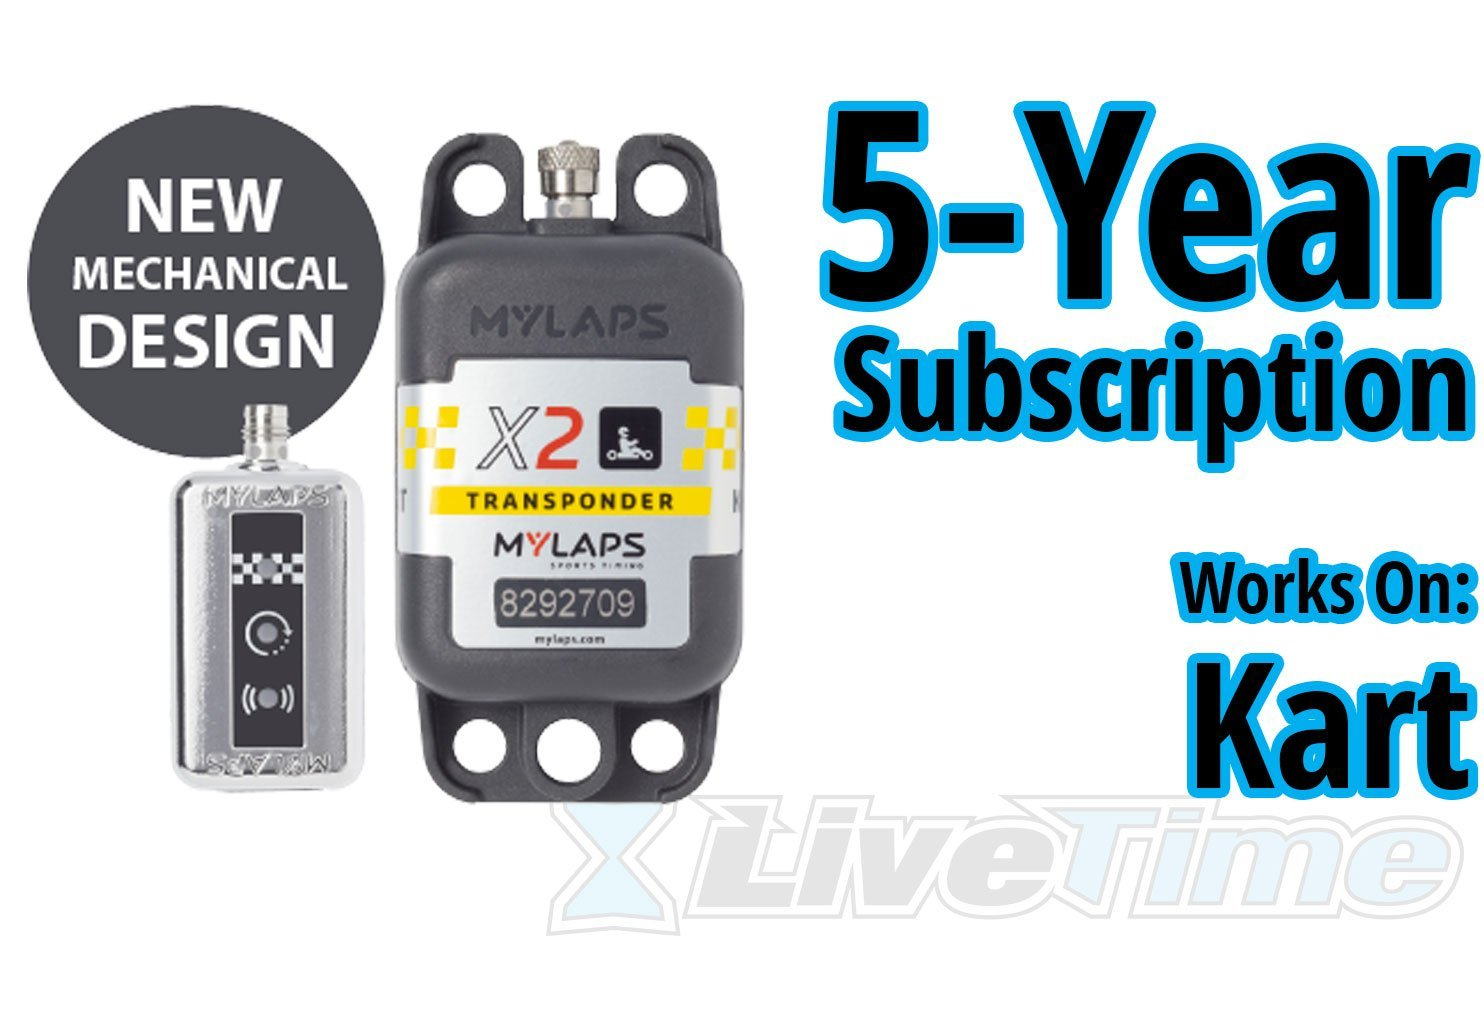 MyLaps X2 Transponder, Rechargeable, for Karting, includes 5-Year Subscription